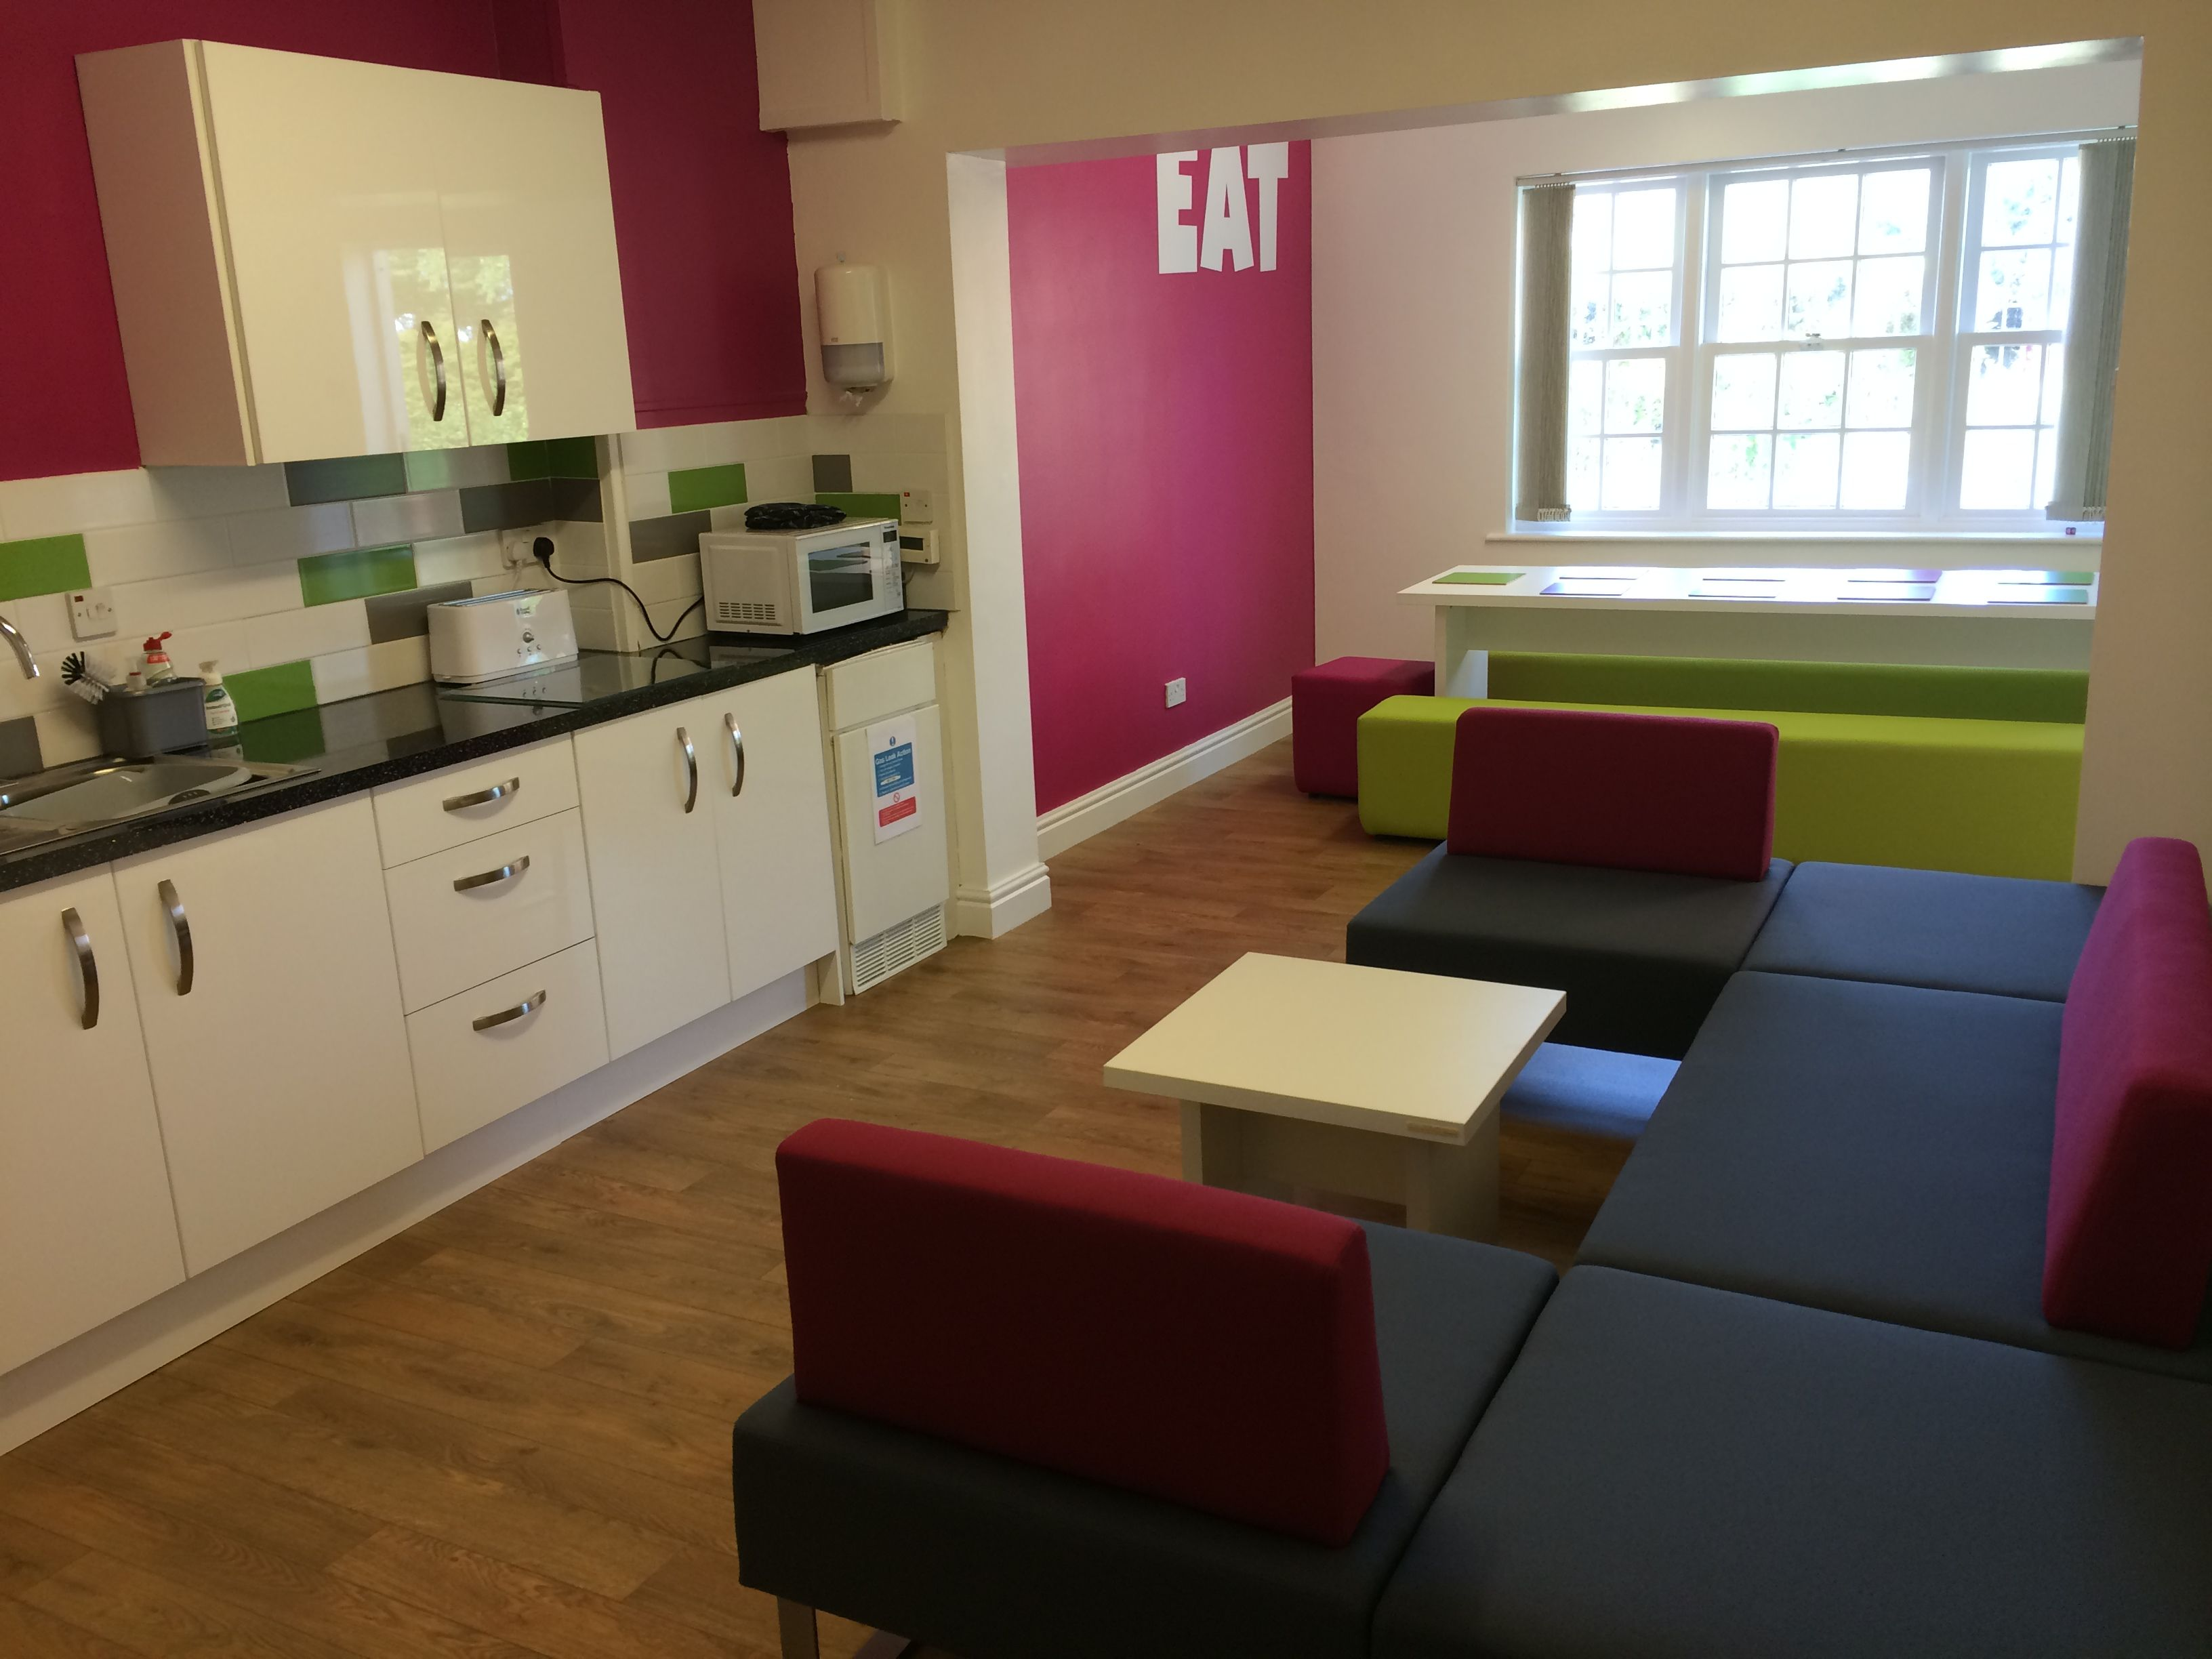 Office Kitchen Furniture Office Kitchen And Breakout Area With Dining Bench Upholstered